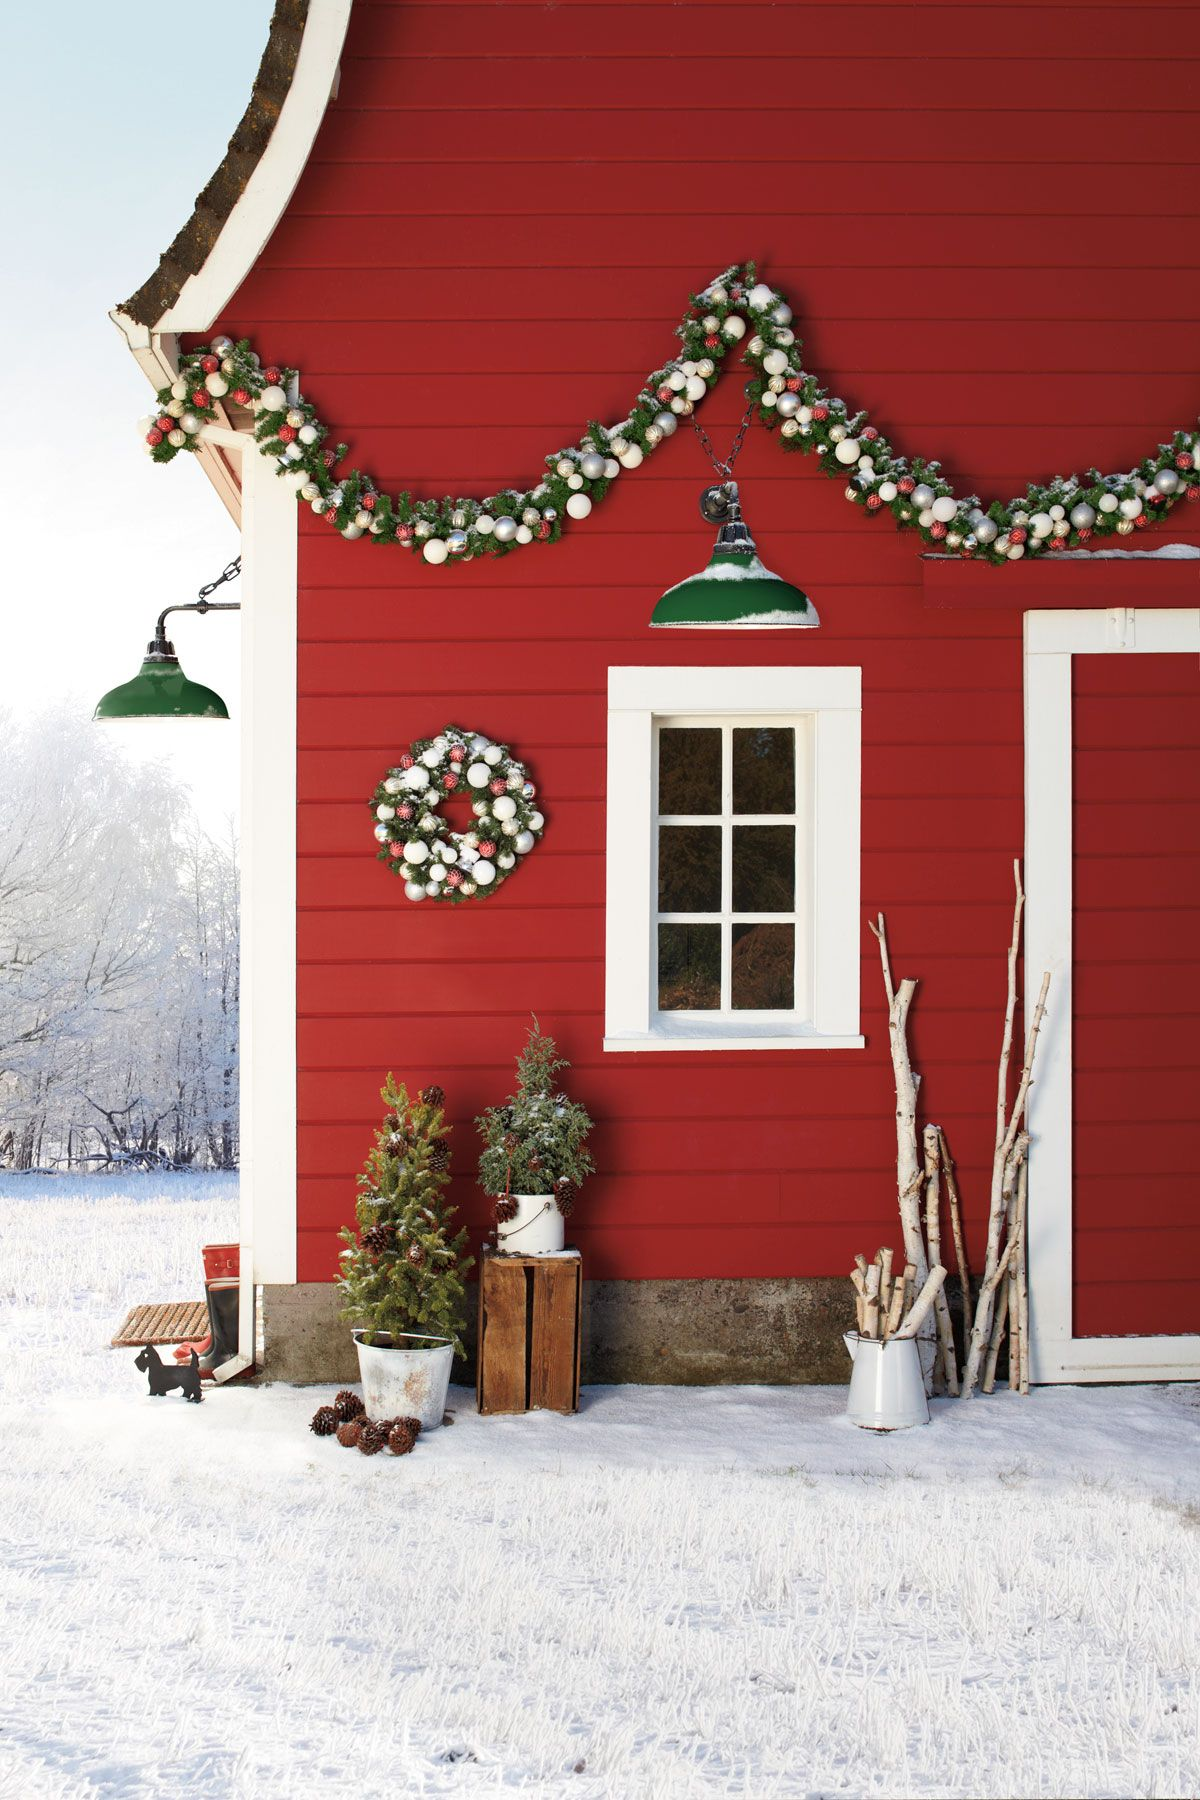 35 outdoor christmas decorations ideas for outside christmas porch decor